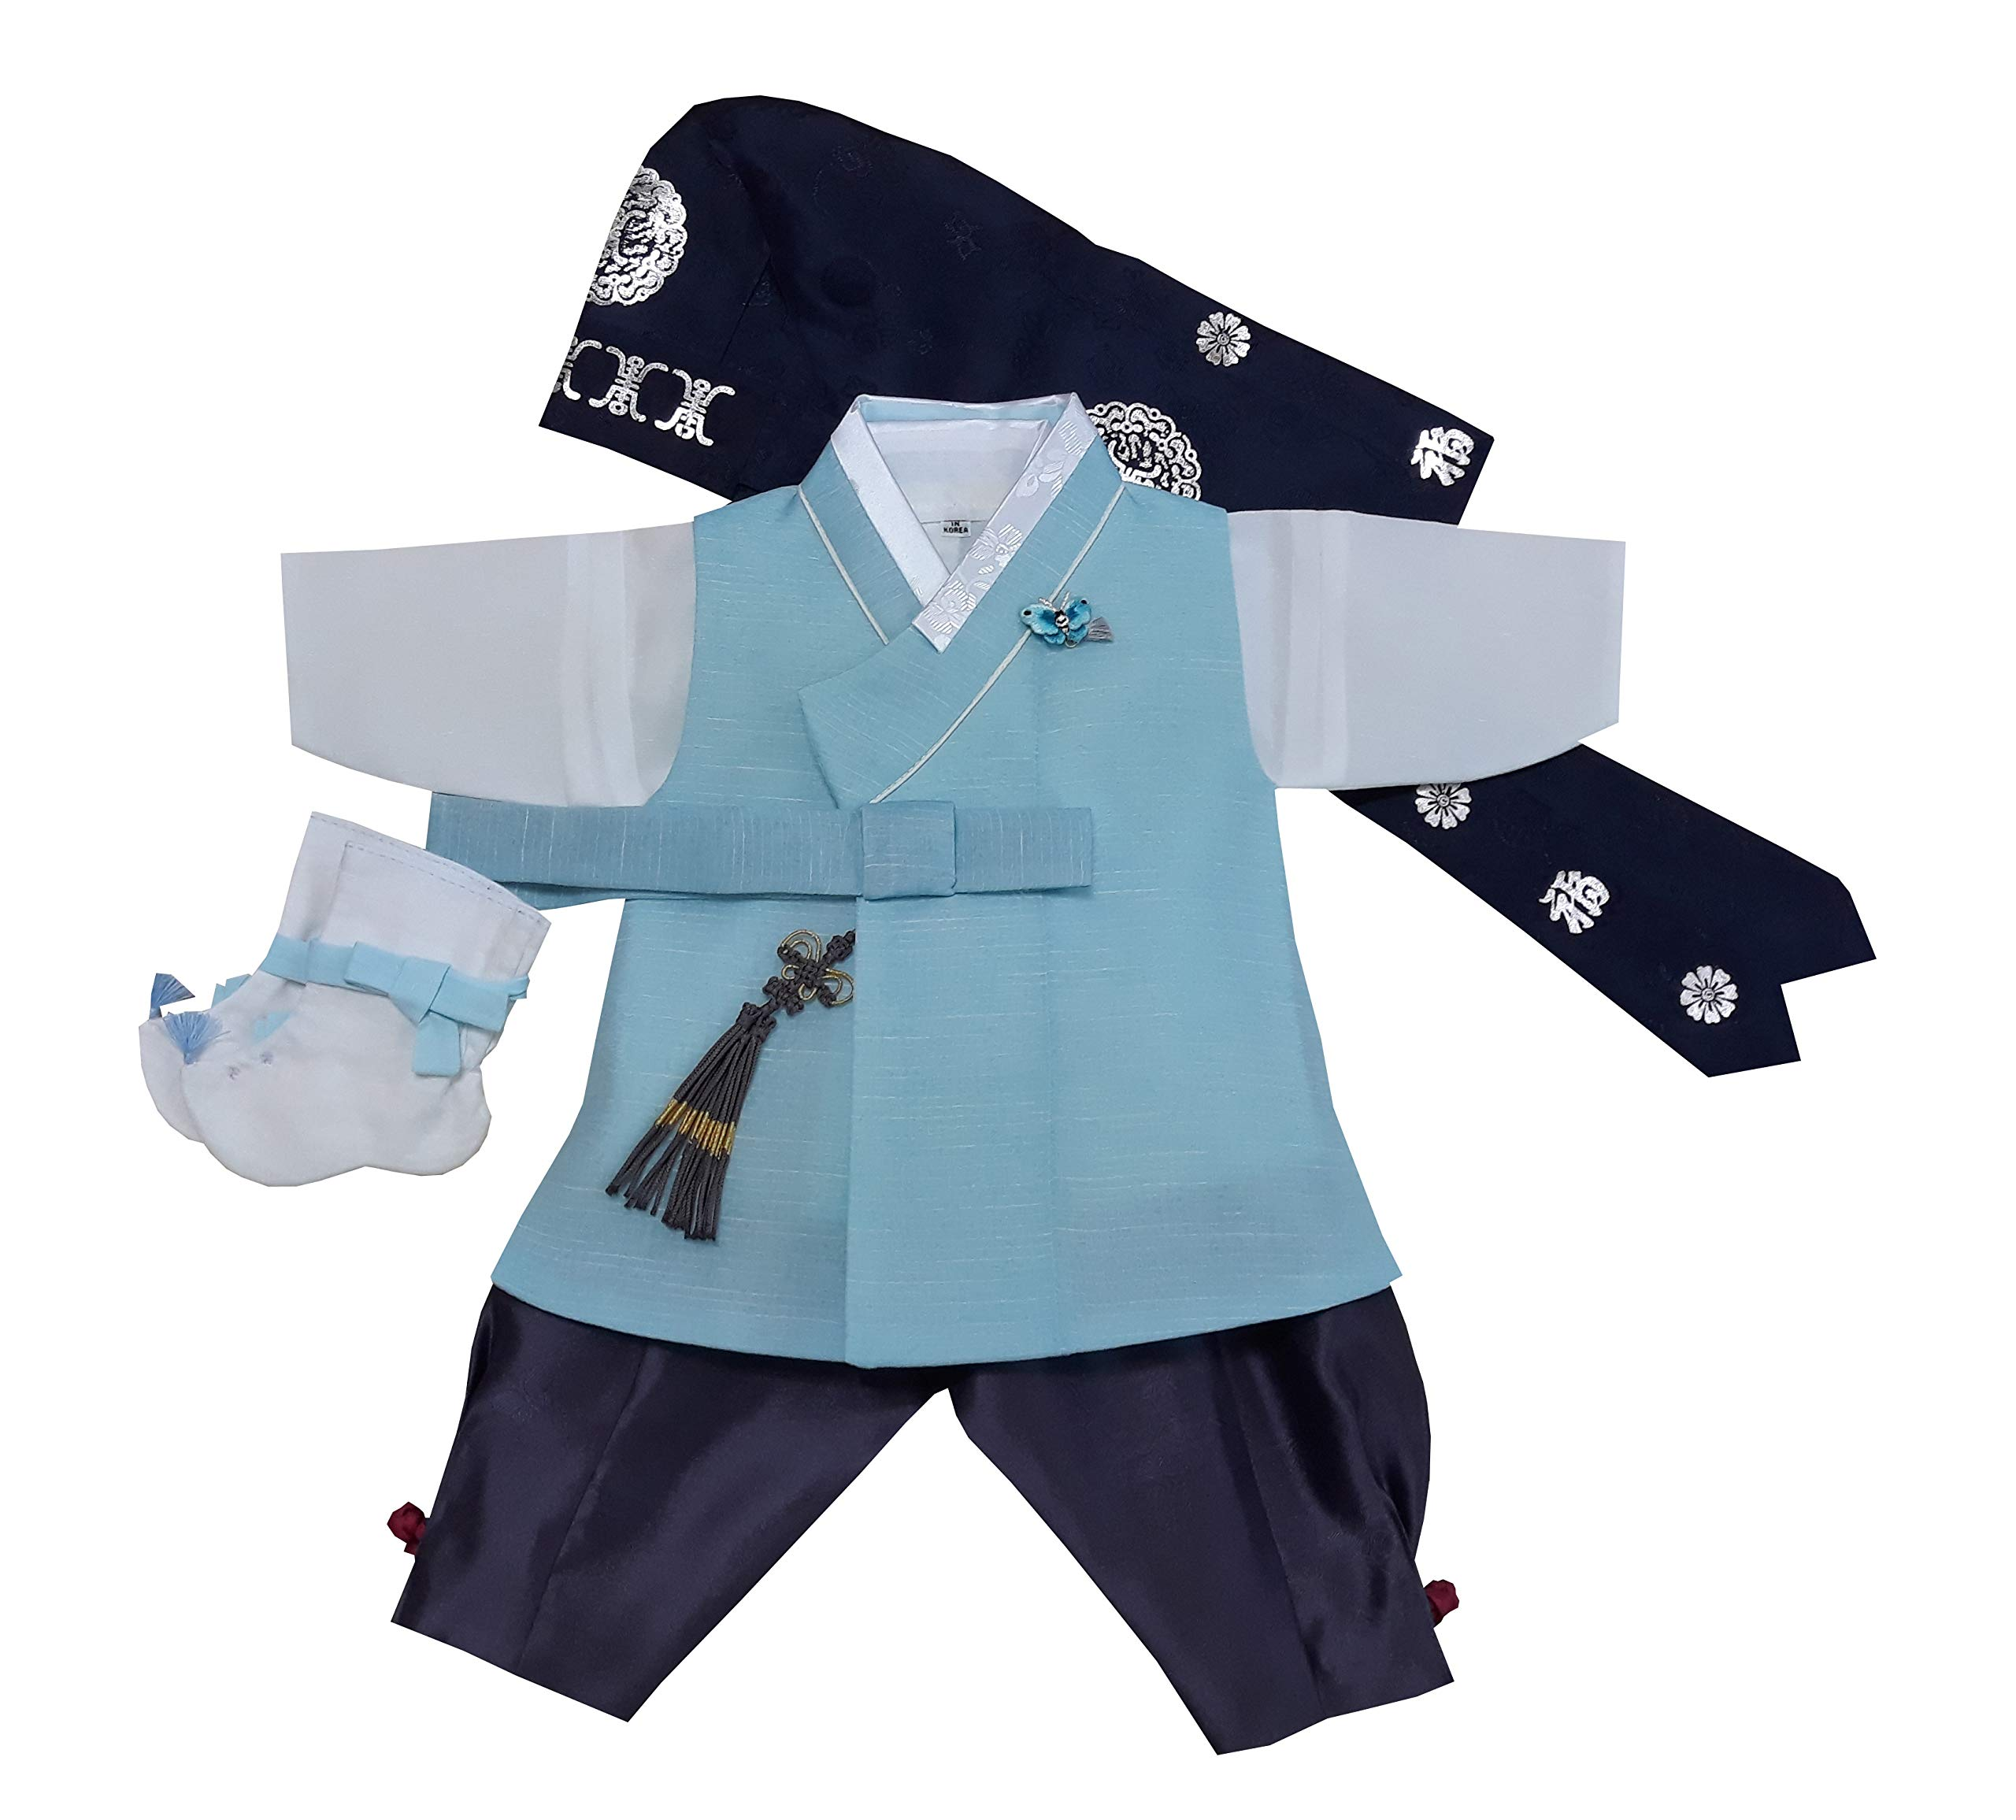 100 Day Birth Korea Baby Boy Hanbok Traditional Dress Outfits Celebration Party Light Blue Set by hanbok store